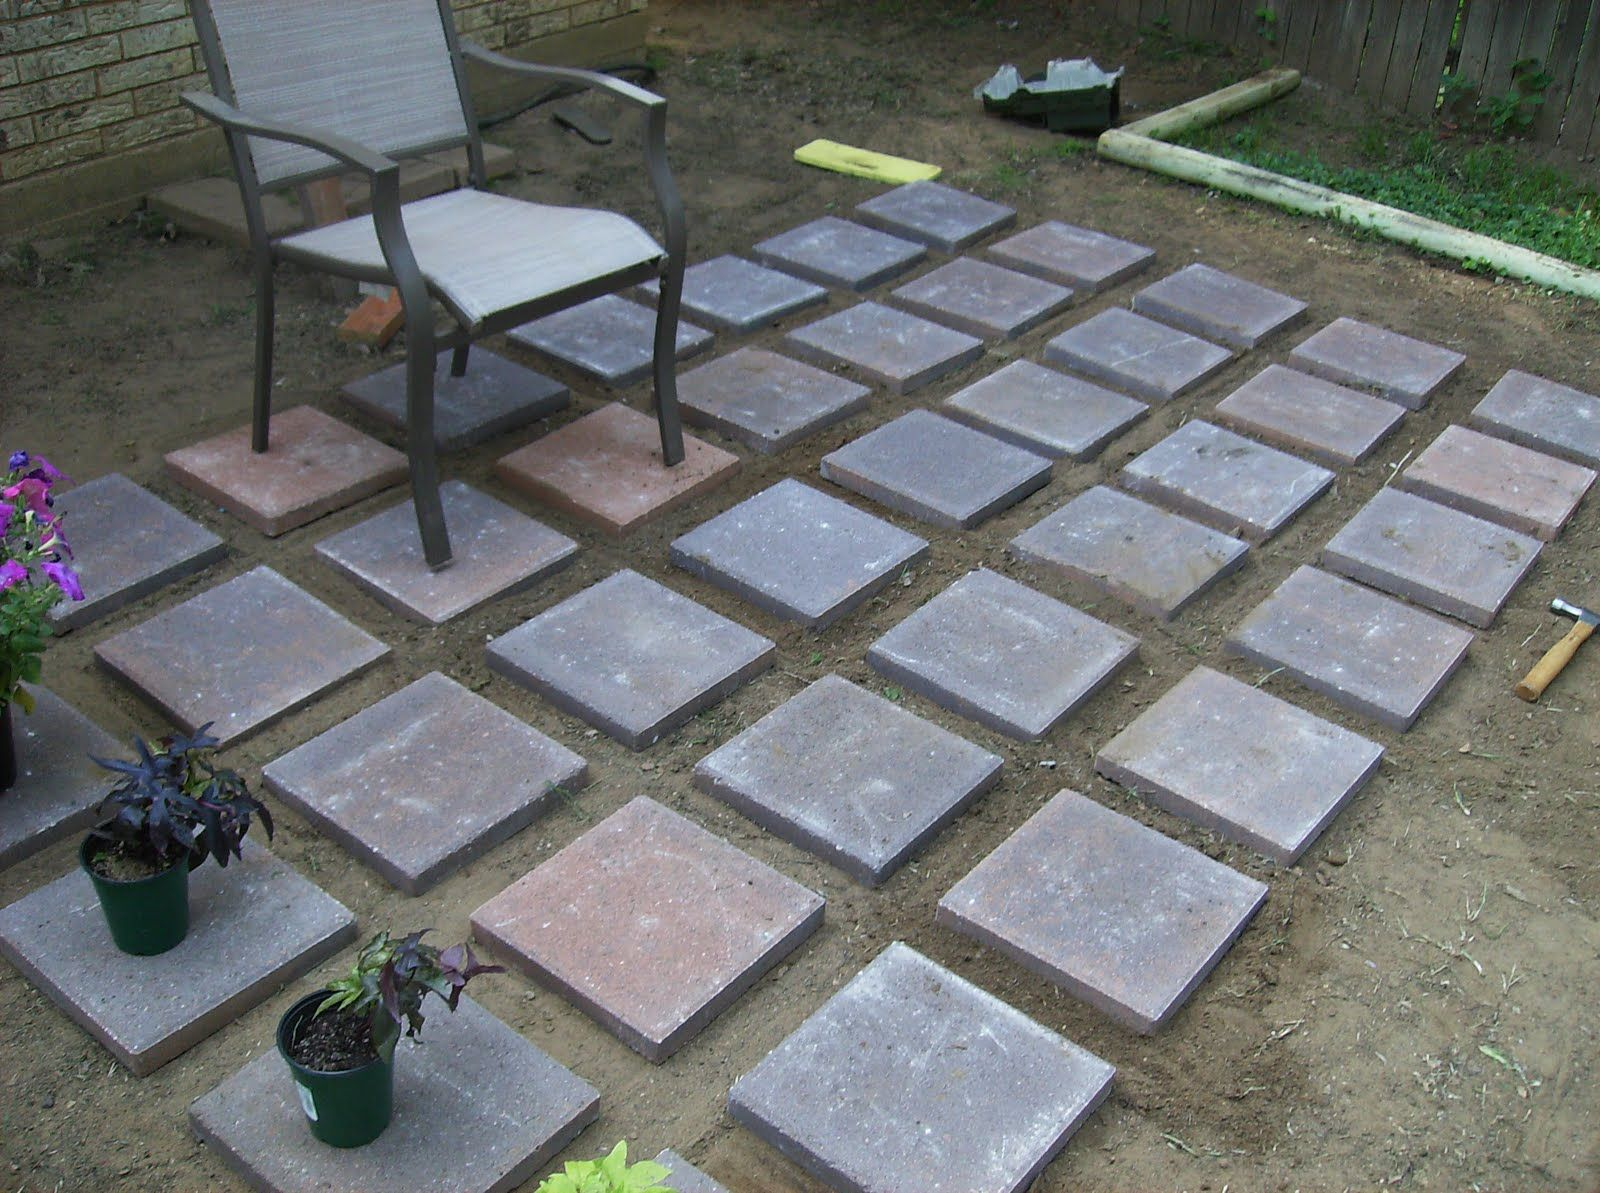 Cheap Paver Patio Ideas Calladoc Us Patio Blocks Diy Patio Pavers Paver Patio